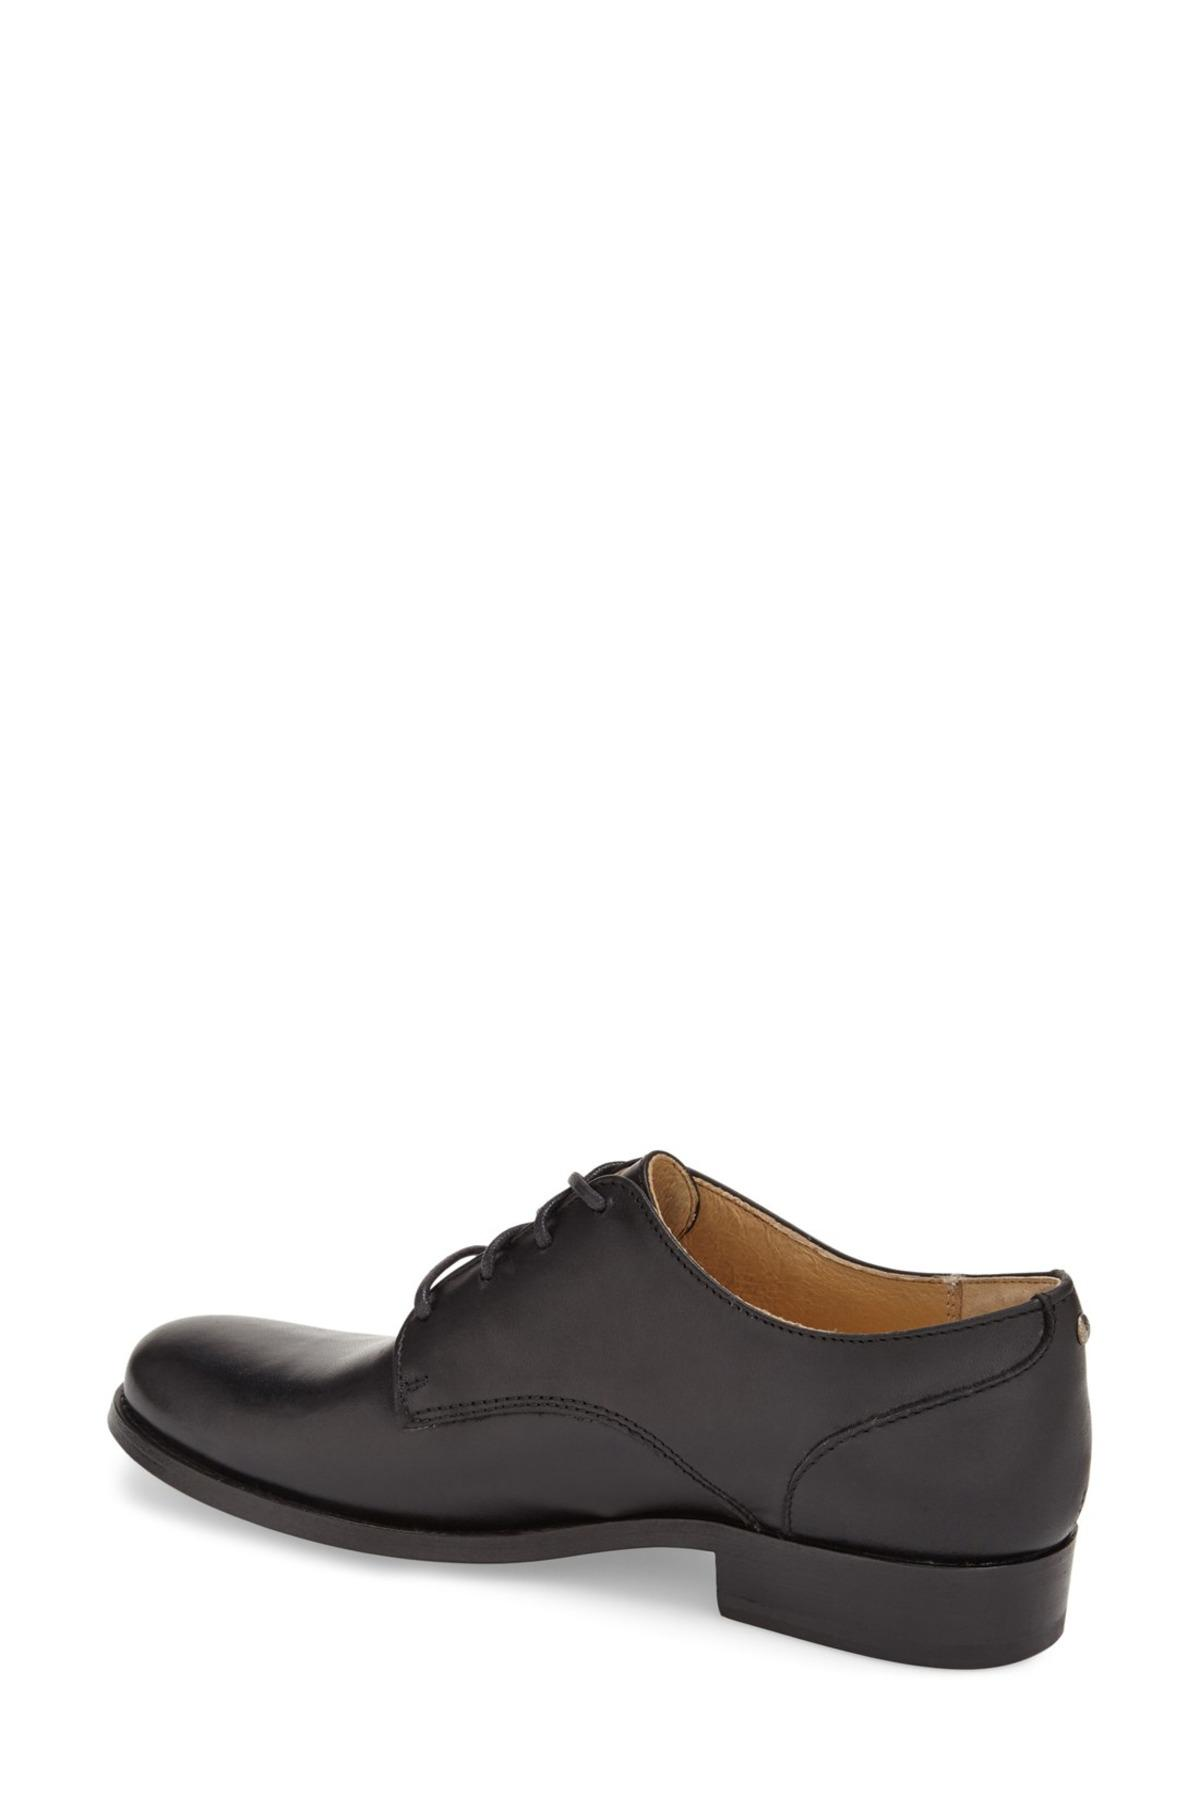 7e0b455eb81 Lyst - Frye Melissa Derby in Black for Men